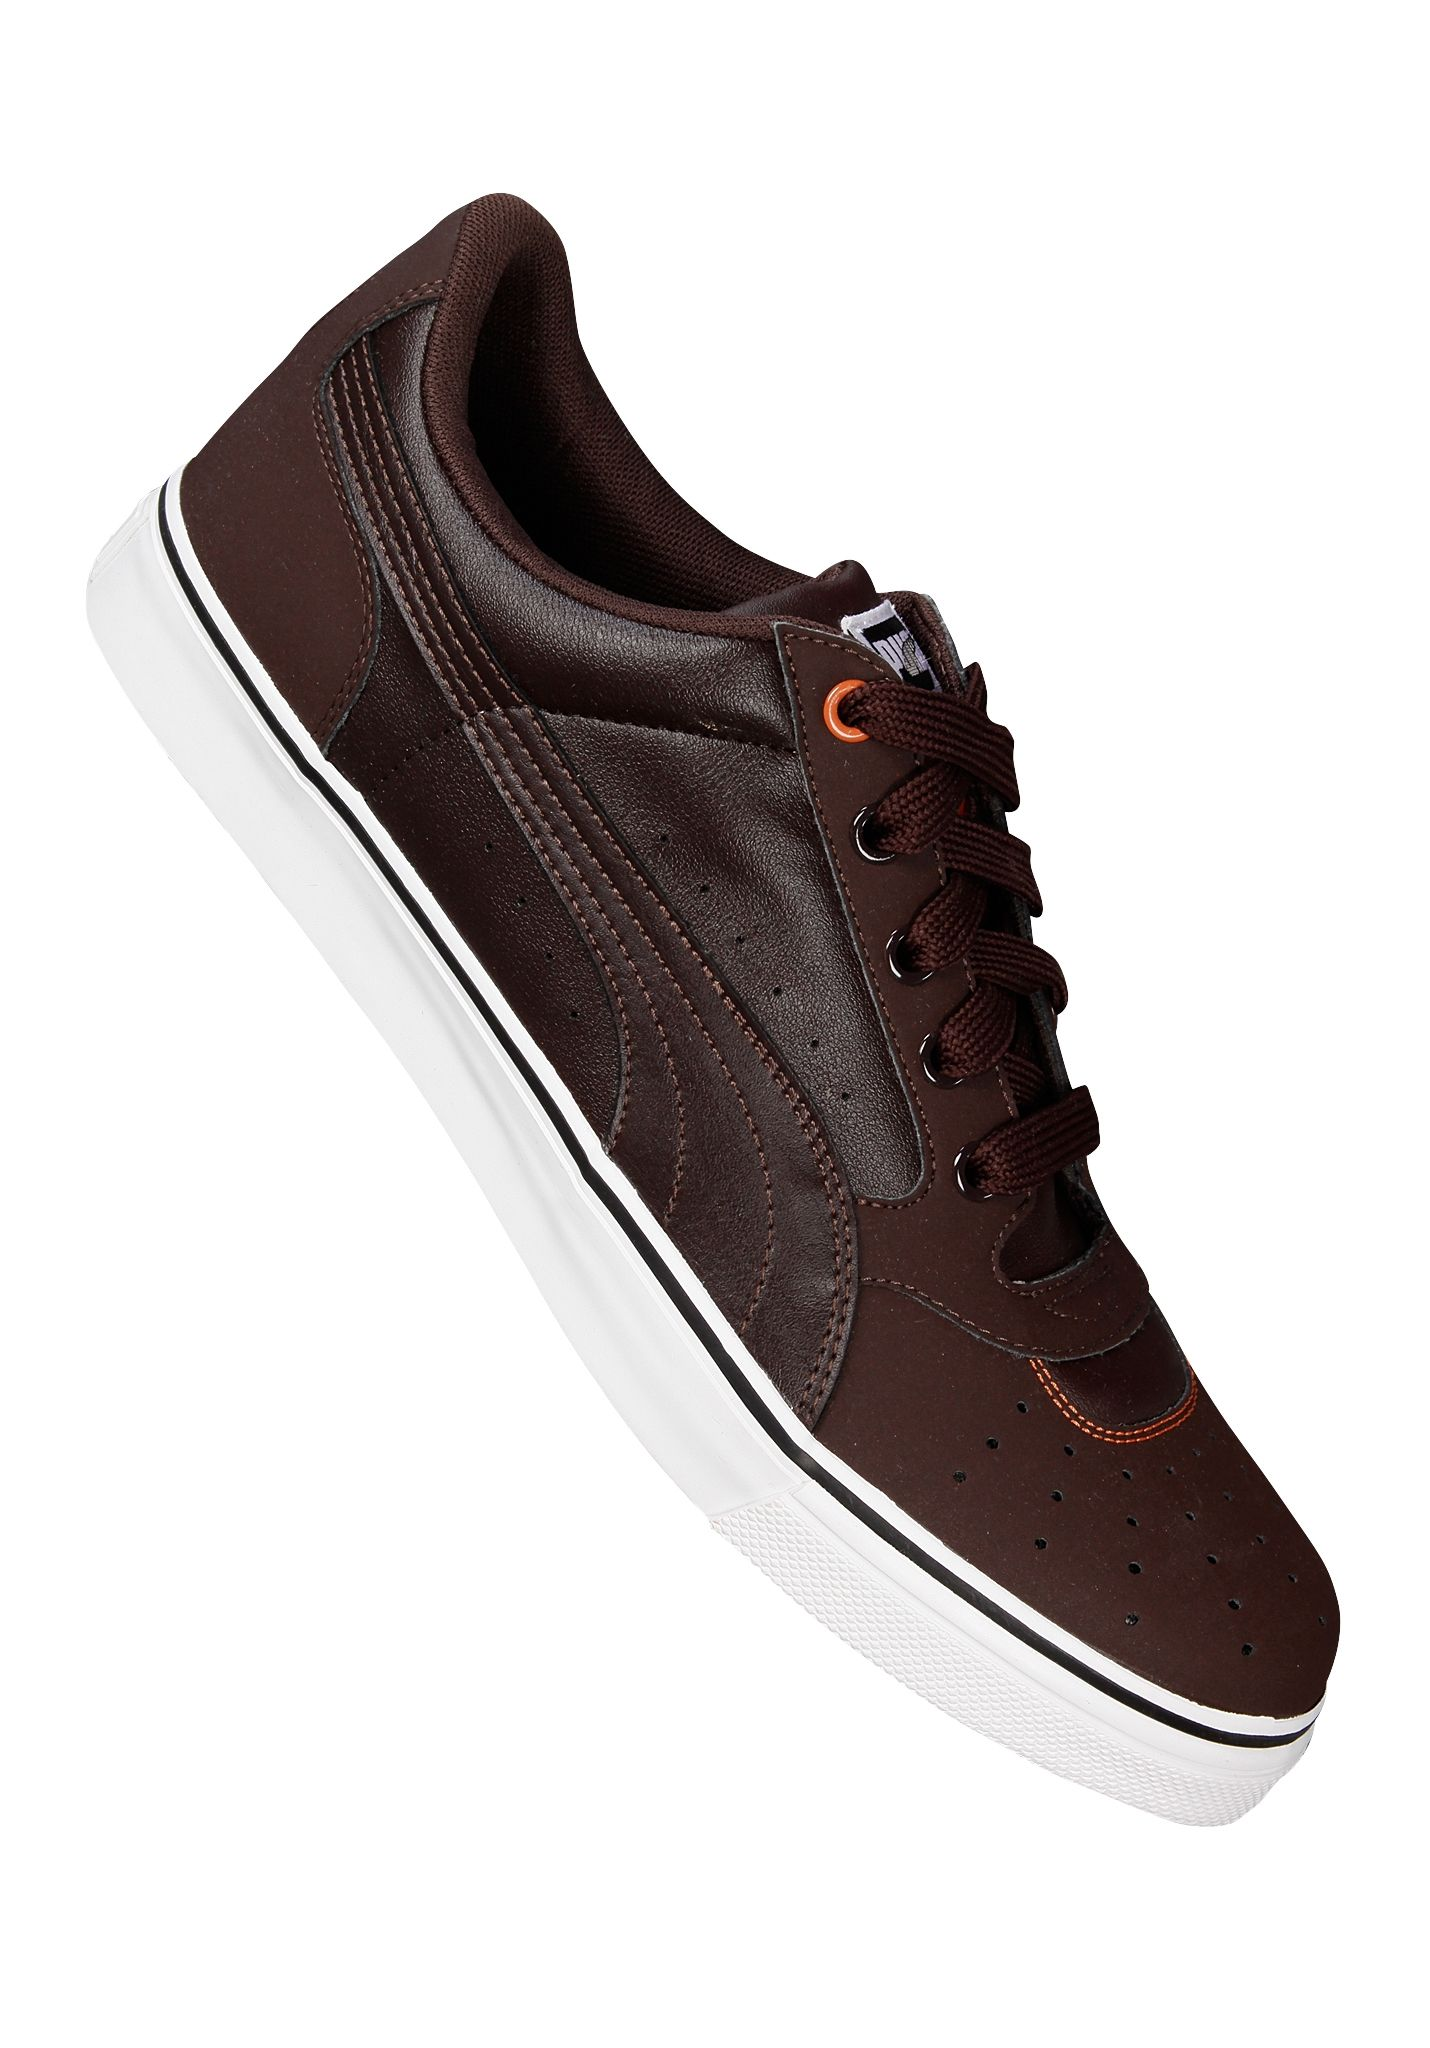 4c6508cd4fc Puma Sky 2 Low Vulc - Sneakers for Men - Brown - Planet Sports